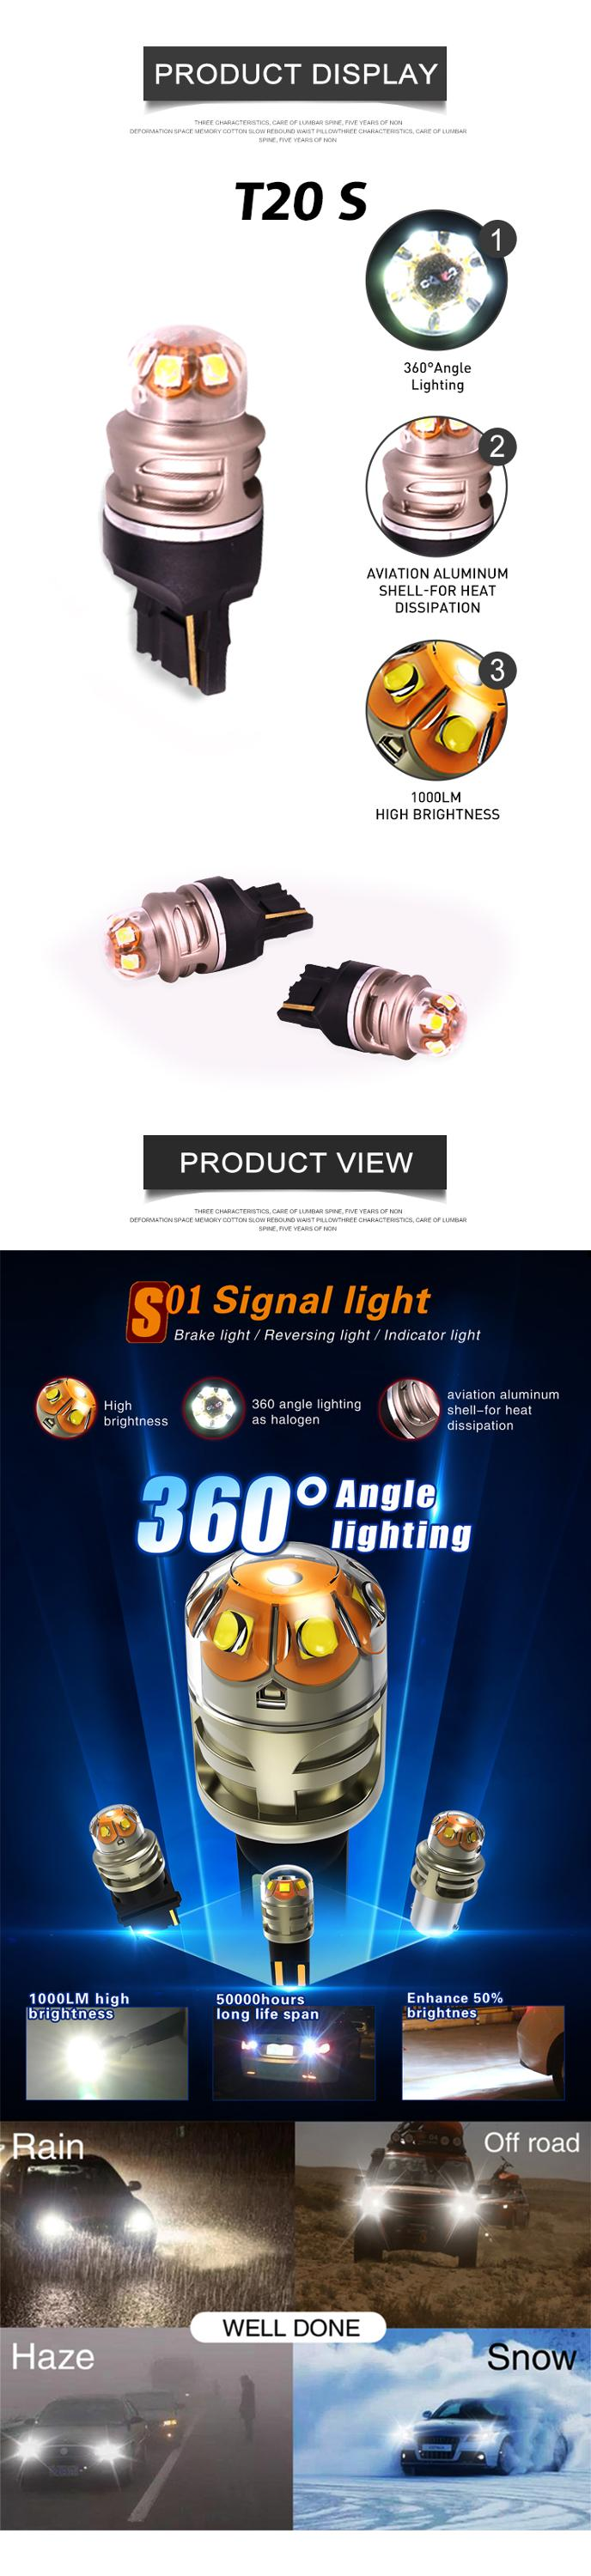 Anycar S01 T20S 450LM led bulb front fog lamp motorcycle